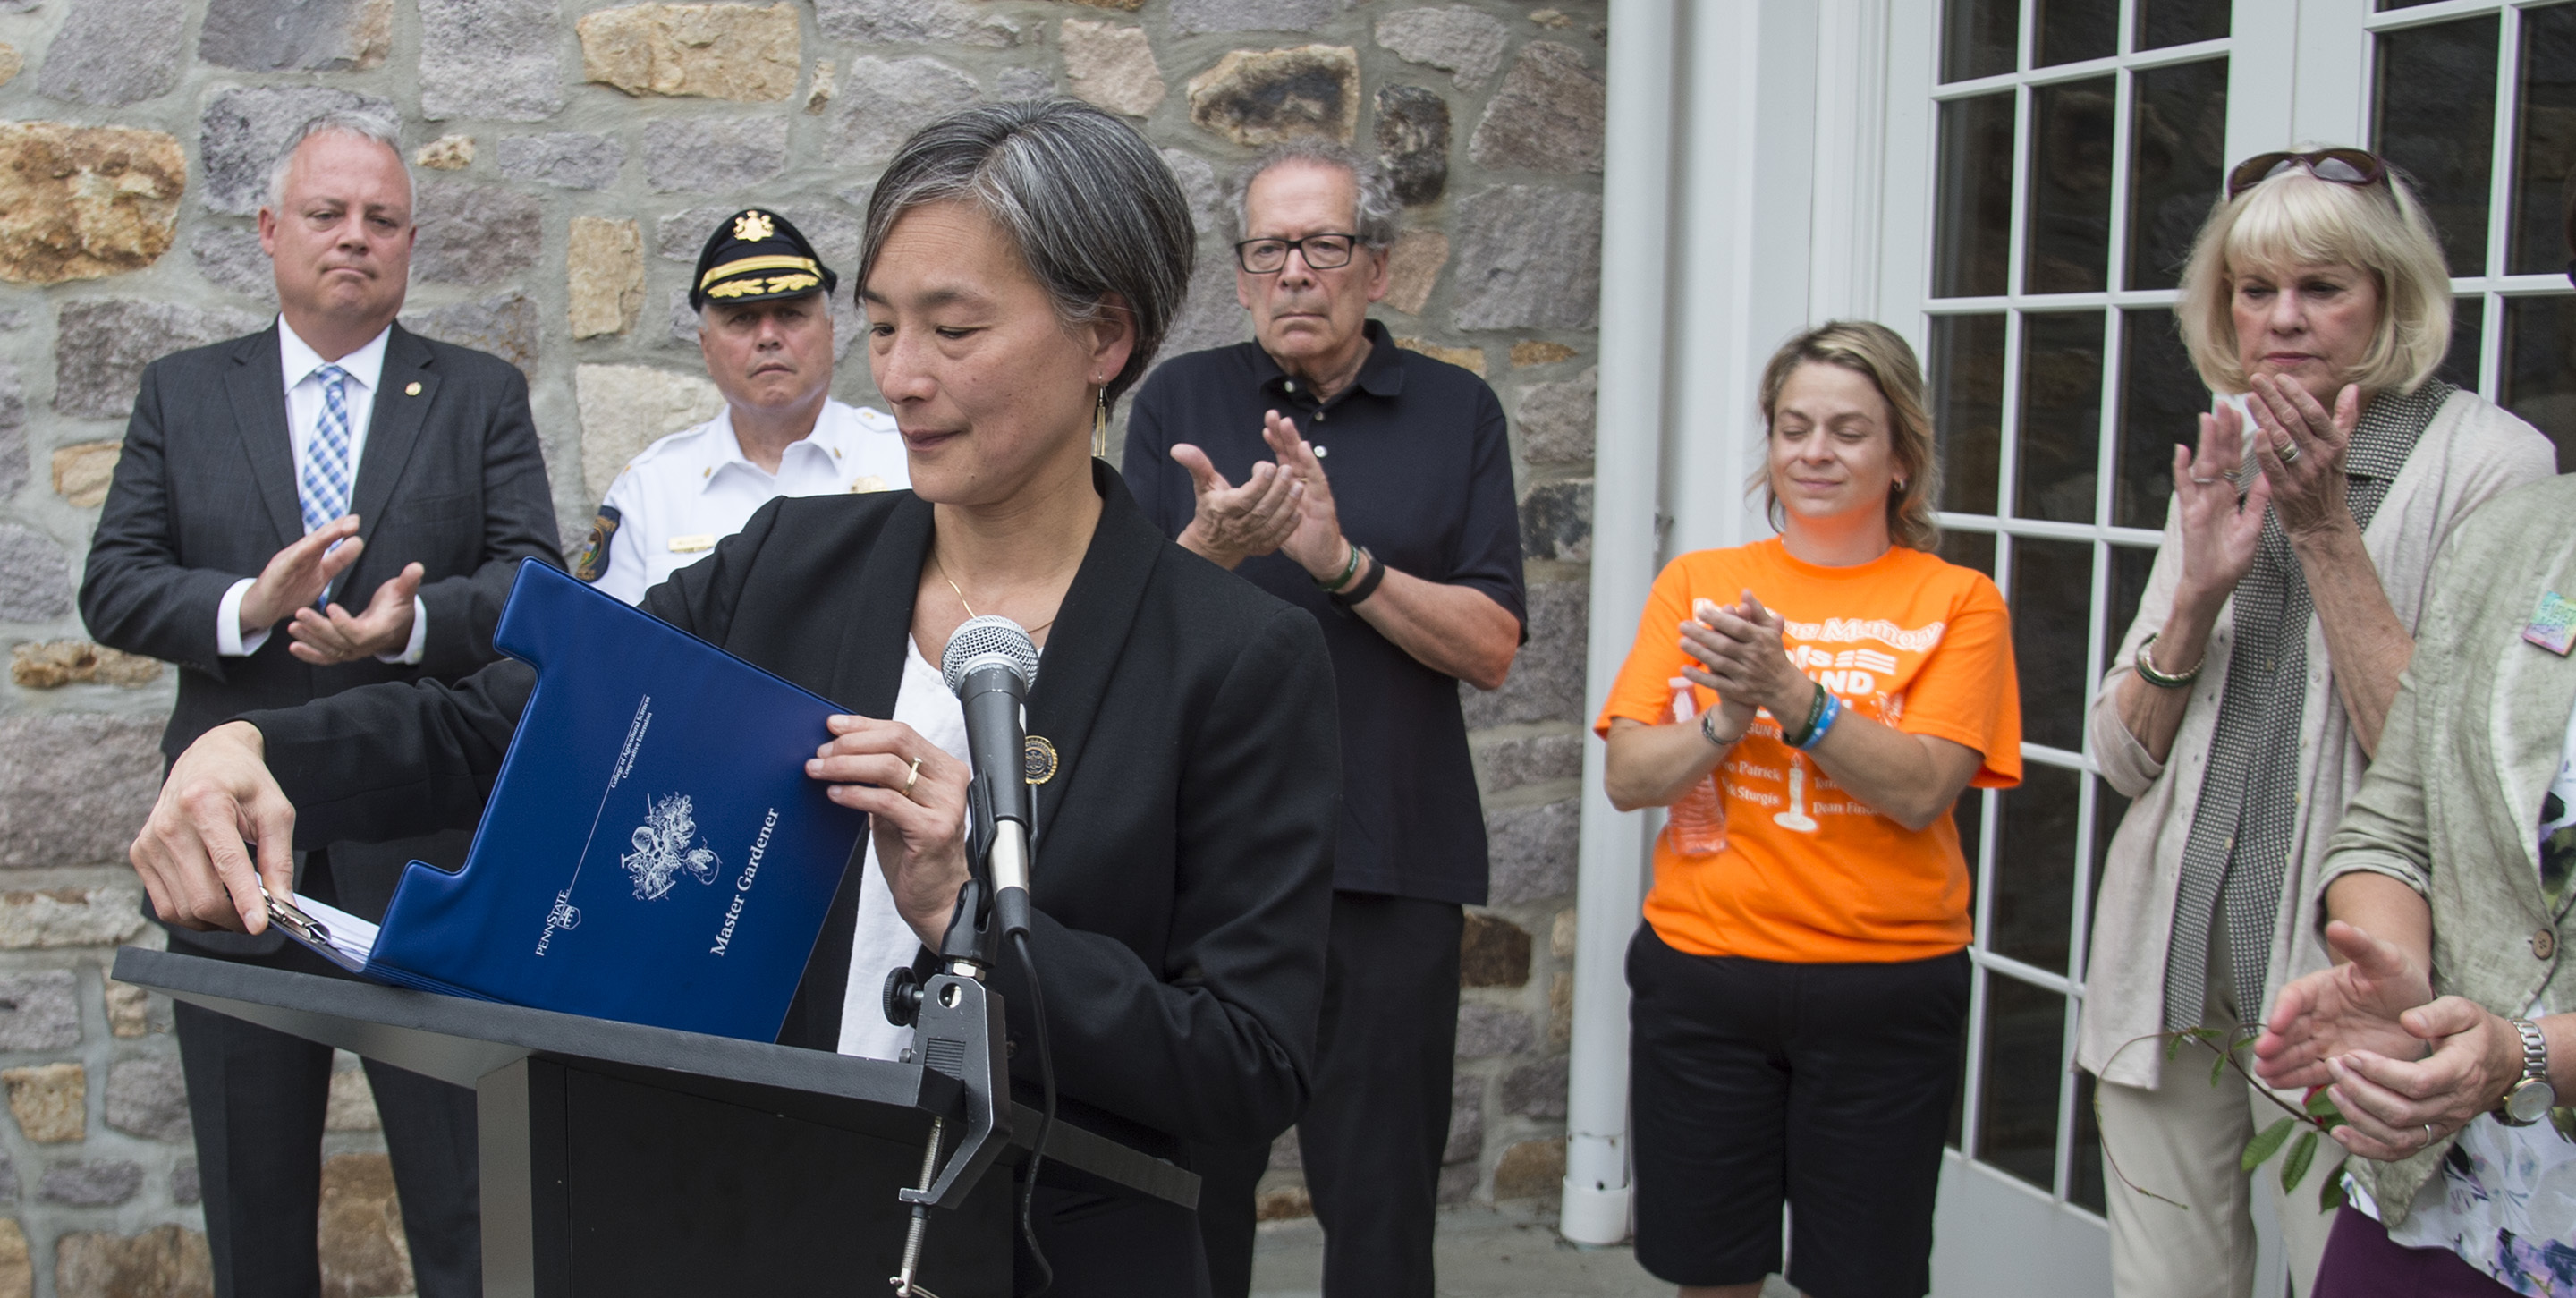 PA State Rep. Helen Tai (D-Bucks) closes her notes and receives a round of applause after she announced at a press conference at the Solebury Township Building July 31, 2018 that she will be introducing three gun safety bills into the legislature this fall. Others at the press conference are (from left) PA State Rep. Perry Warren (D - Bucks) — who is also reintroducing a universal gun background check bill — Solebury Township police chief Dominick Bellizzie, Rich Patrick, grandfather and legal guardian of Jimi Patrick, one of Cosmo DiNardo's victims, Melissa Fratanduono-Meo, mother of another DiNardo victim Tom Meo, and Sharon Patrick, Jimi Patrick´s grandmother.